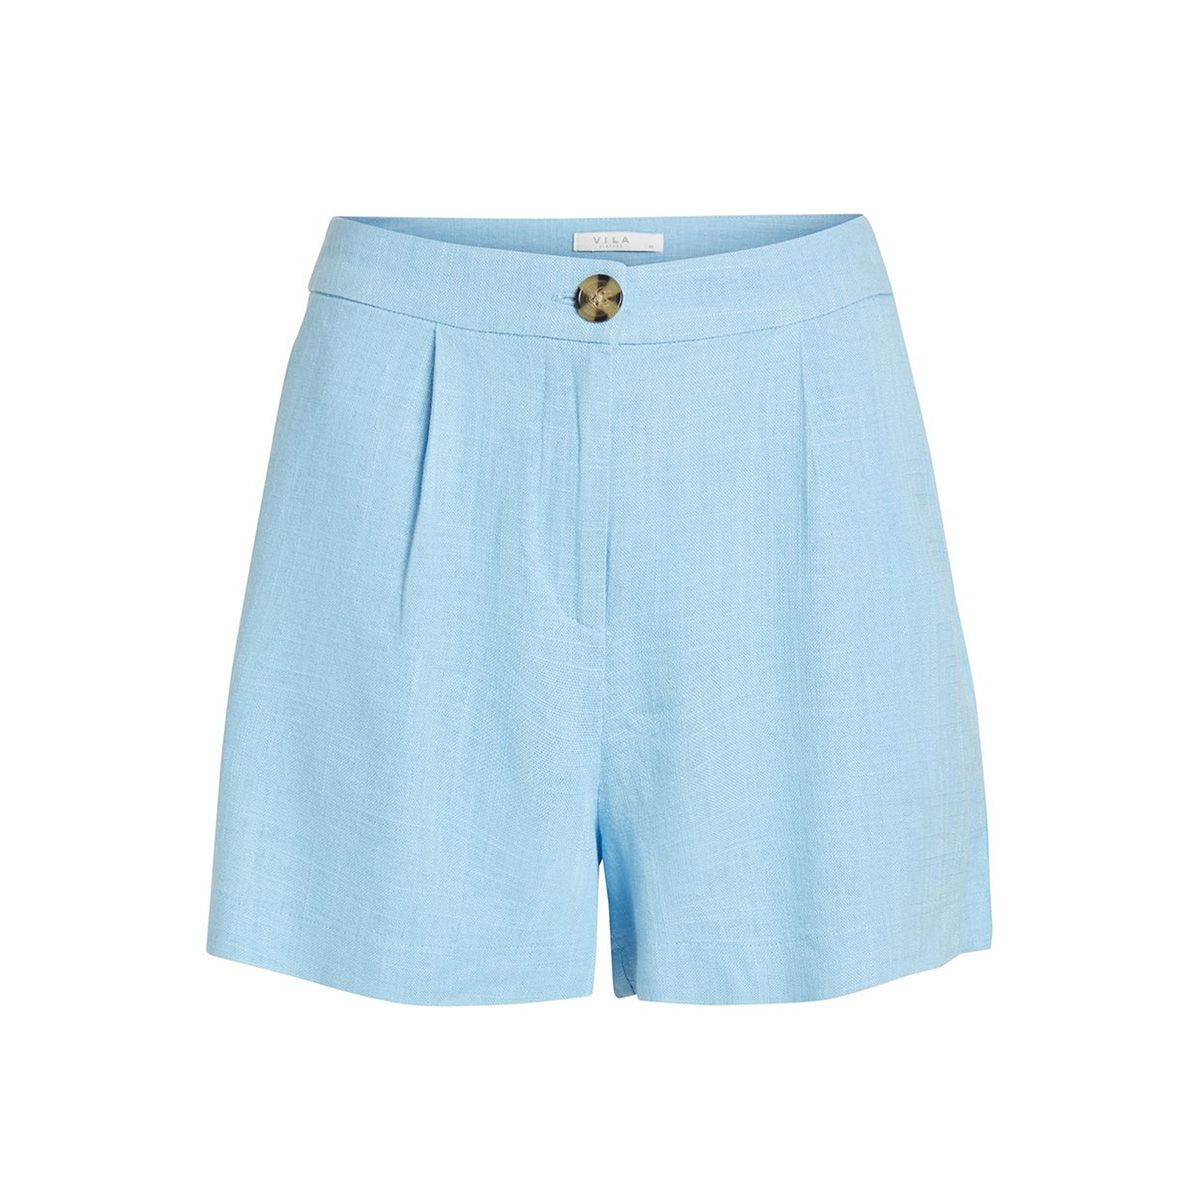 vilinnan shorts 14053037 vila korte broek powder blue